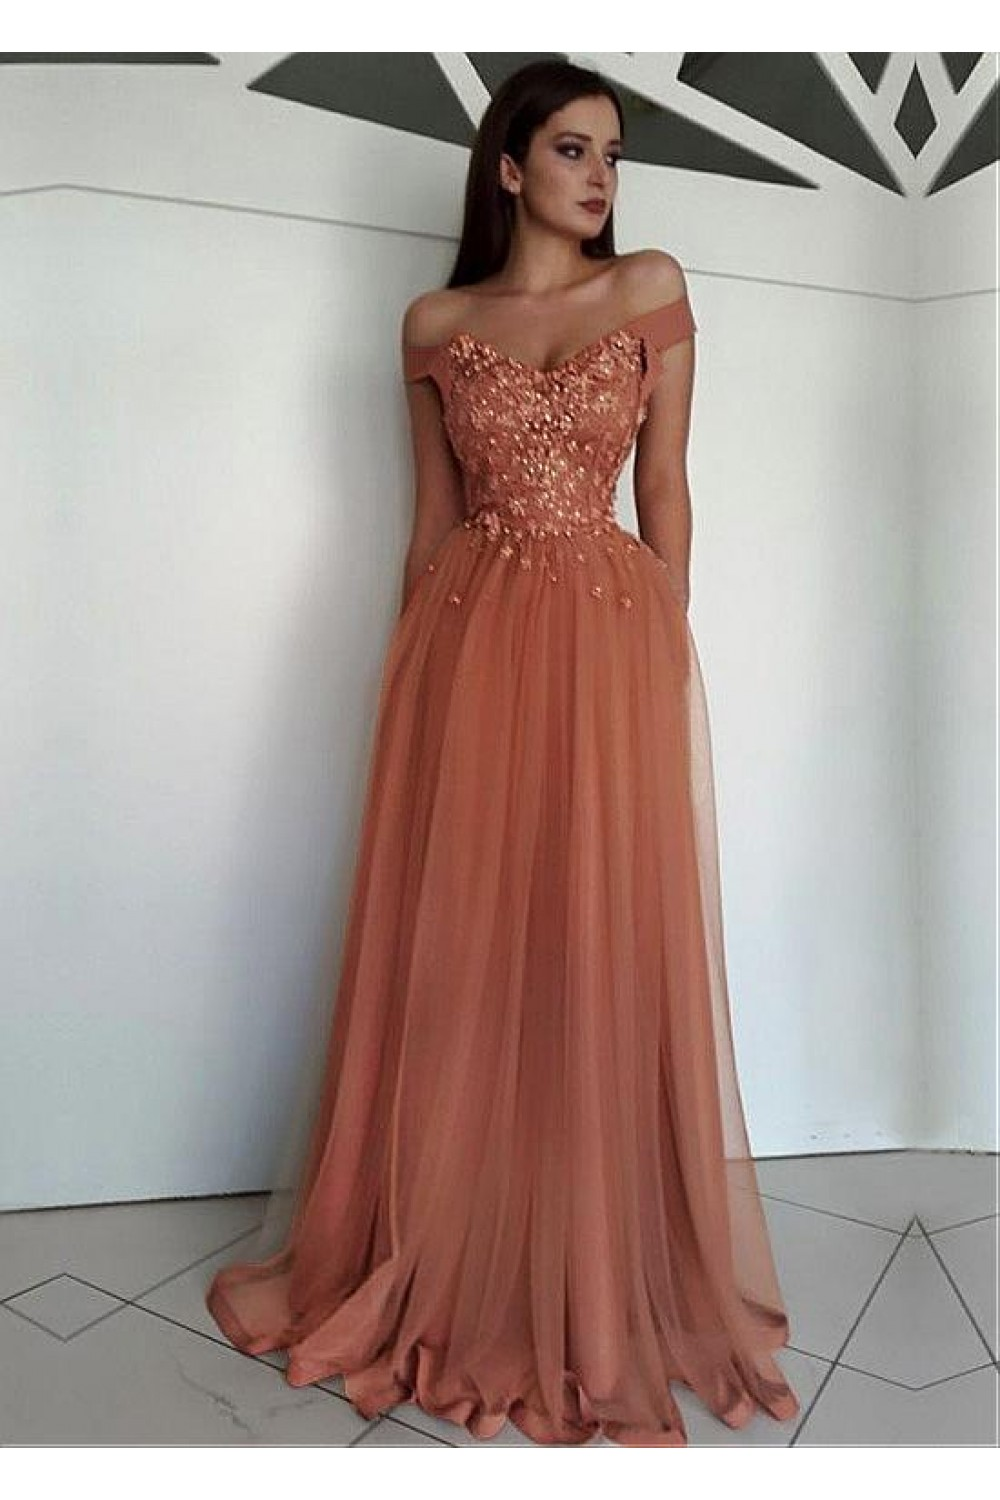 Evening Gown with Beading   Style 71502   Morilee